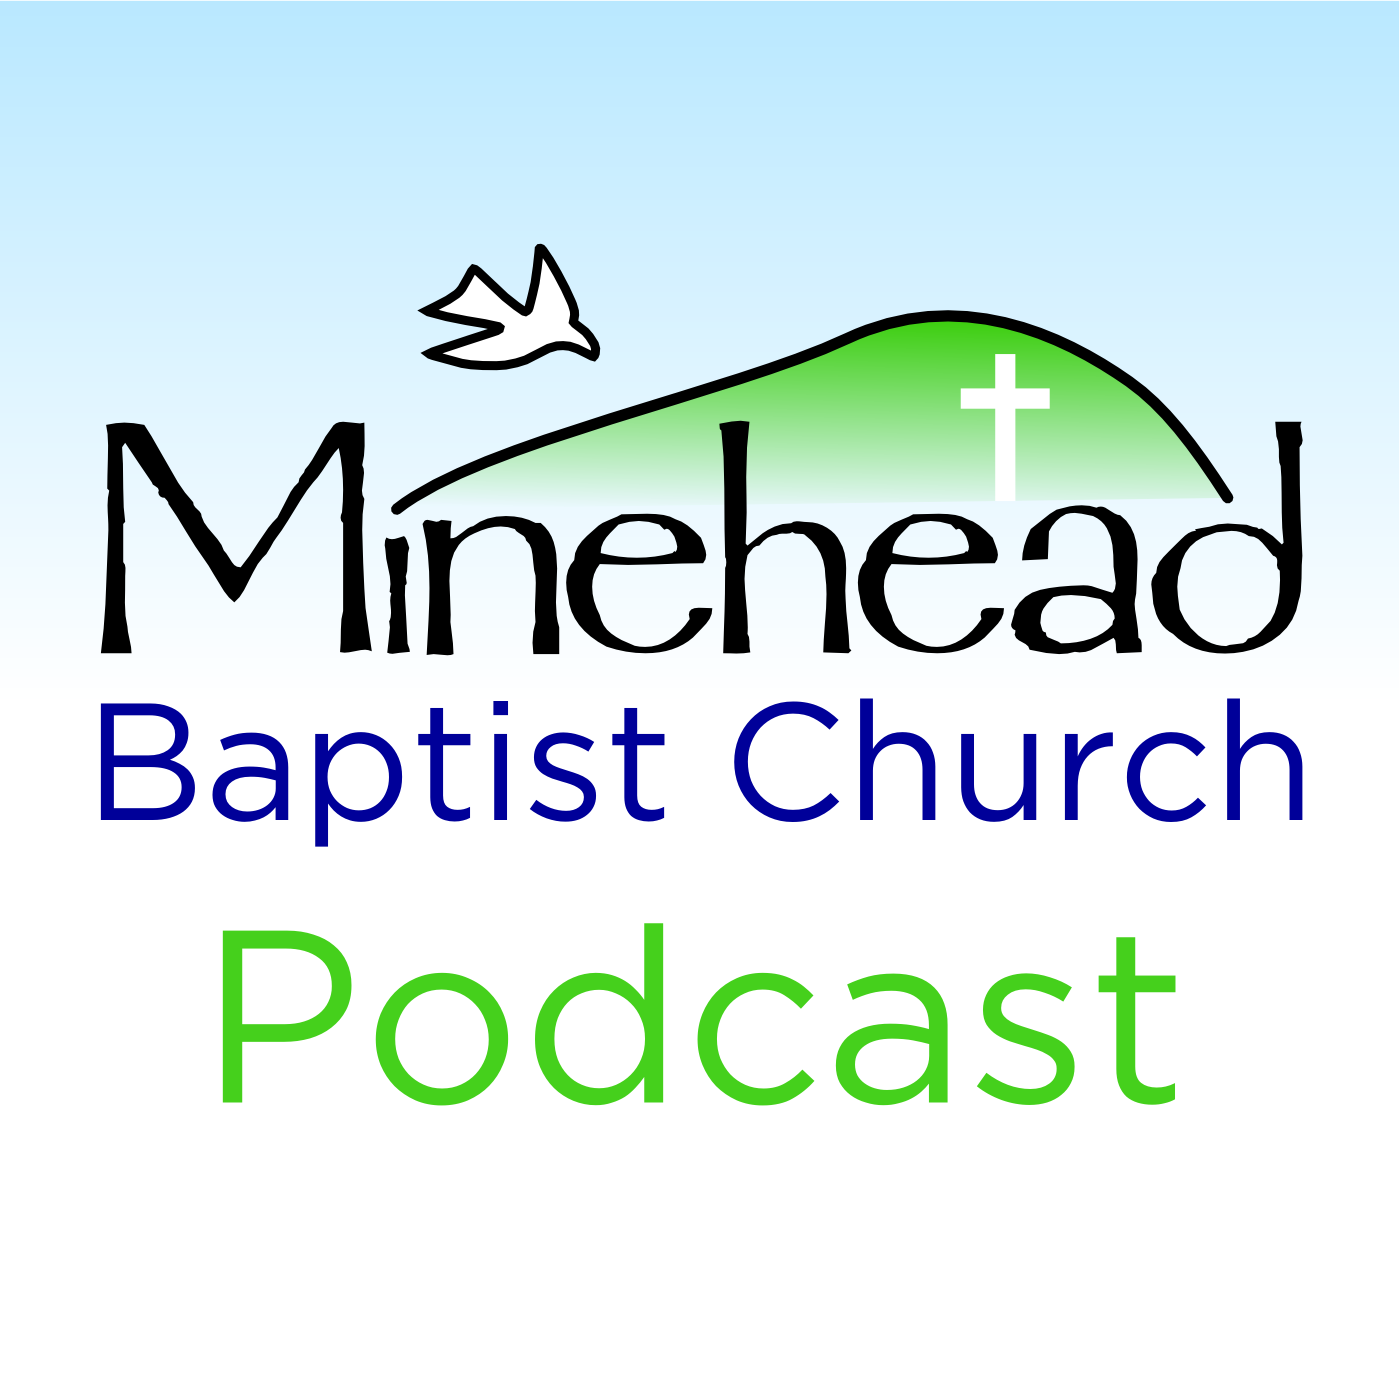 Minehead Baptist Church Podcast